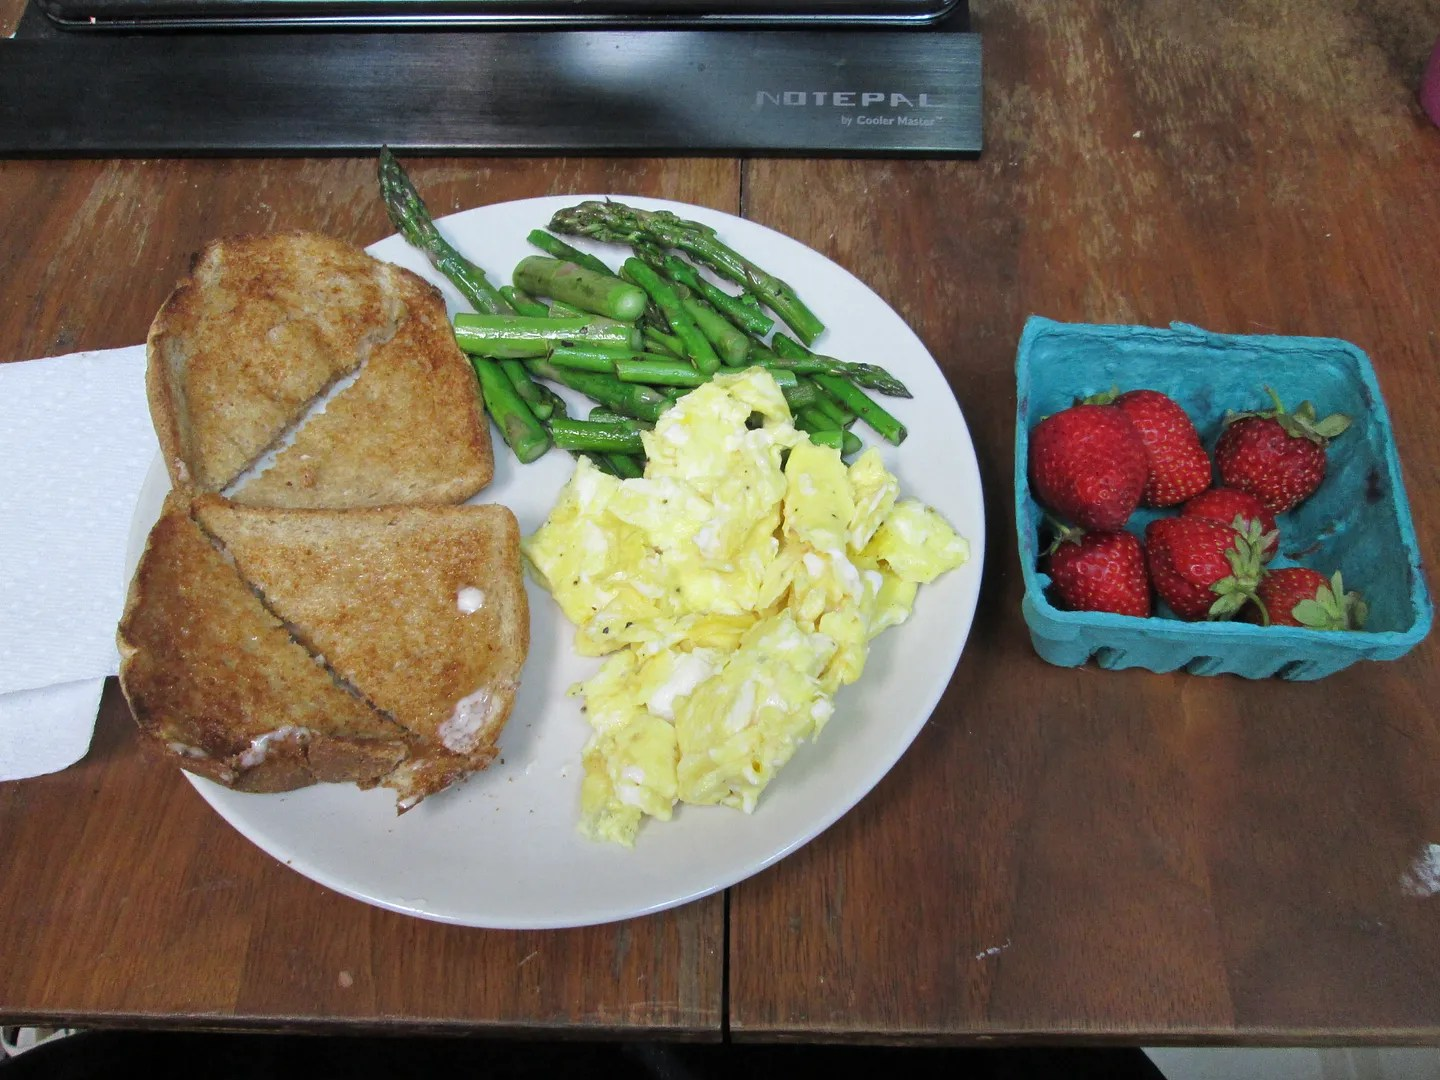 plate with toast, scrambled eggs, sauteed asparagus, next to container of strawberries